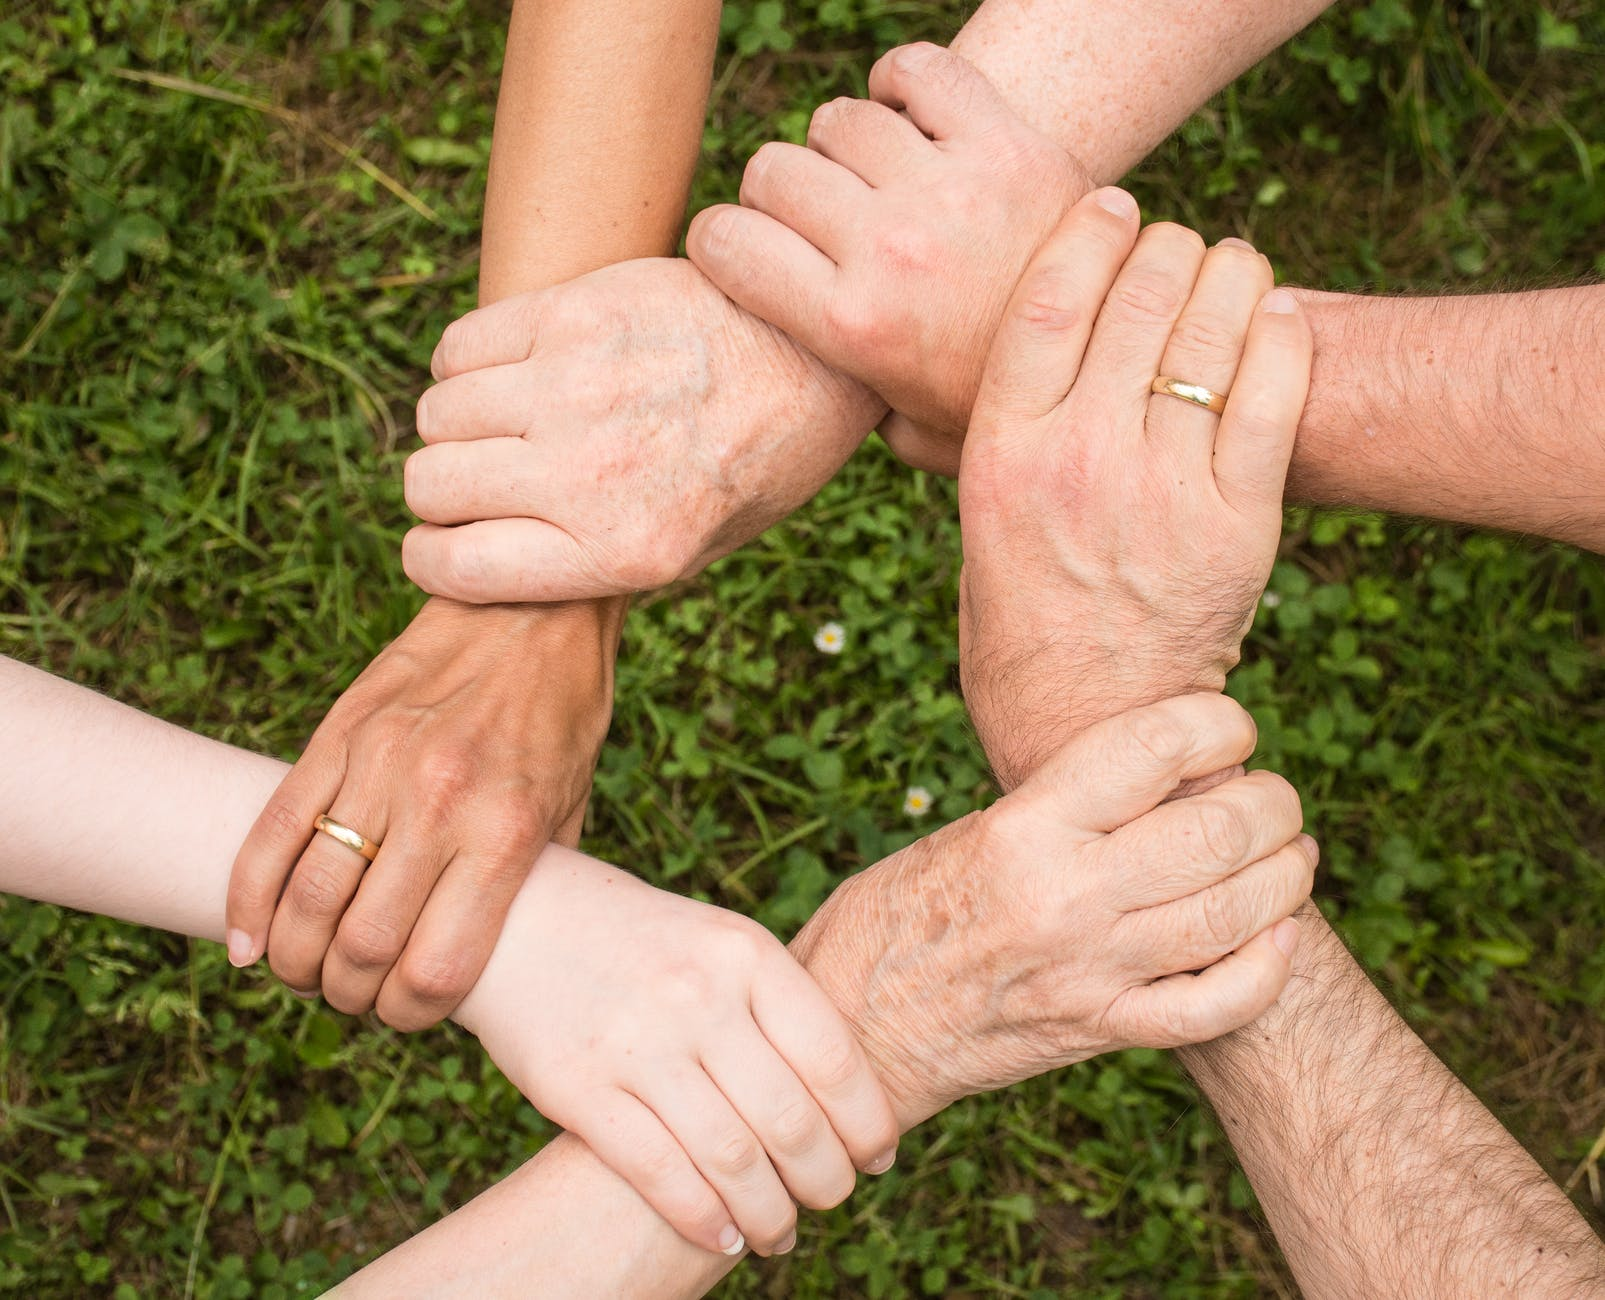 Five peoples hand grabbing each others wrists in support